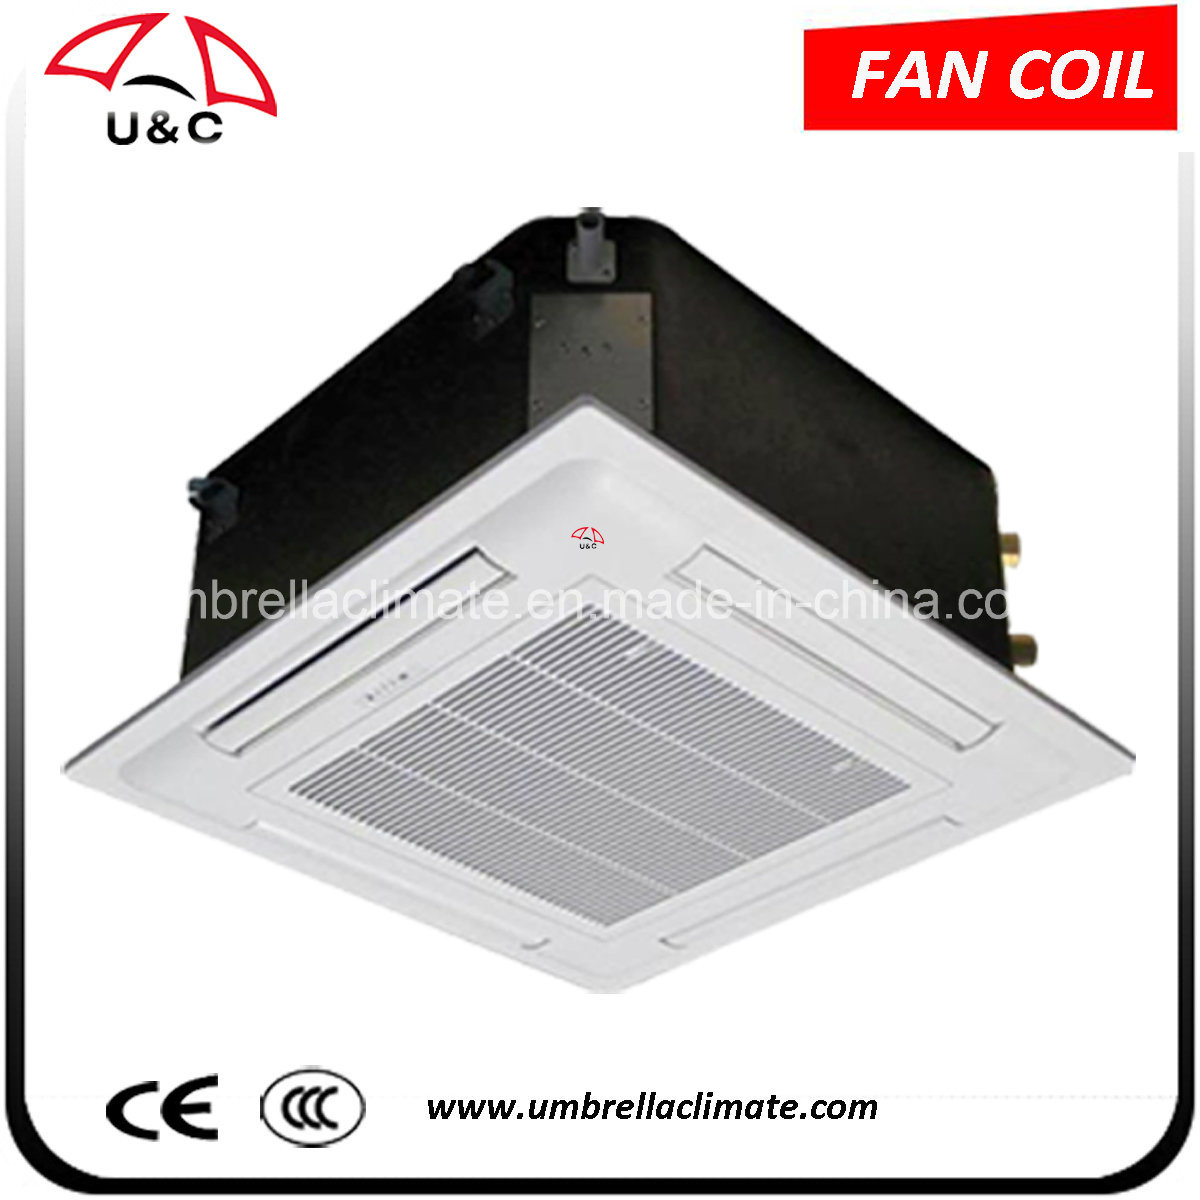 Reliable Quality Central Air Conditioner Air Conditioning